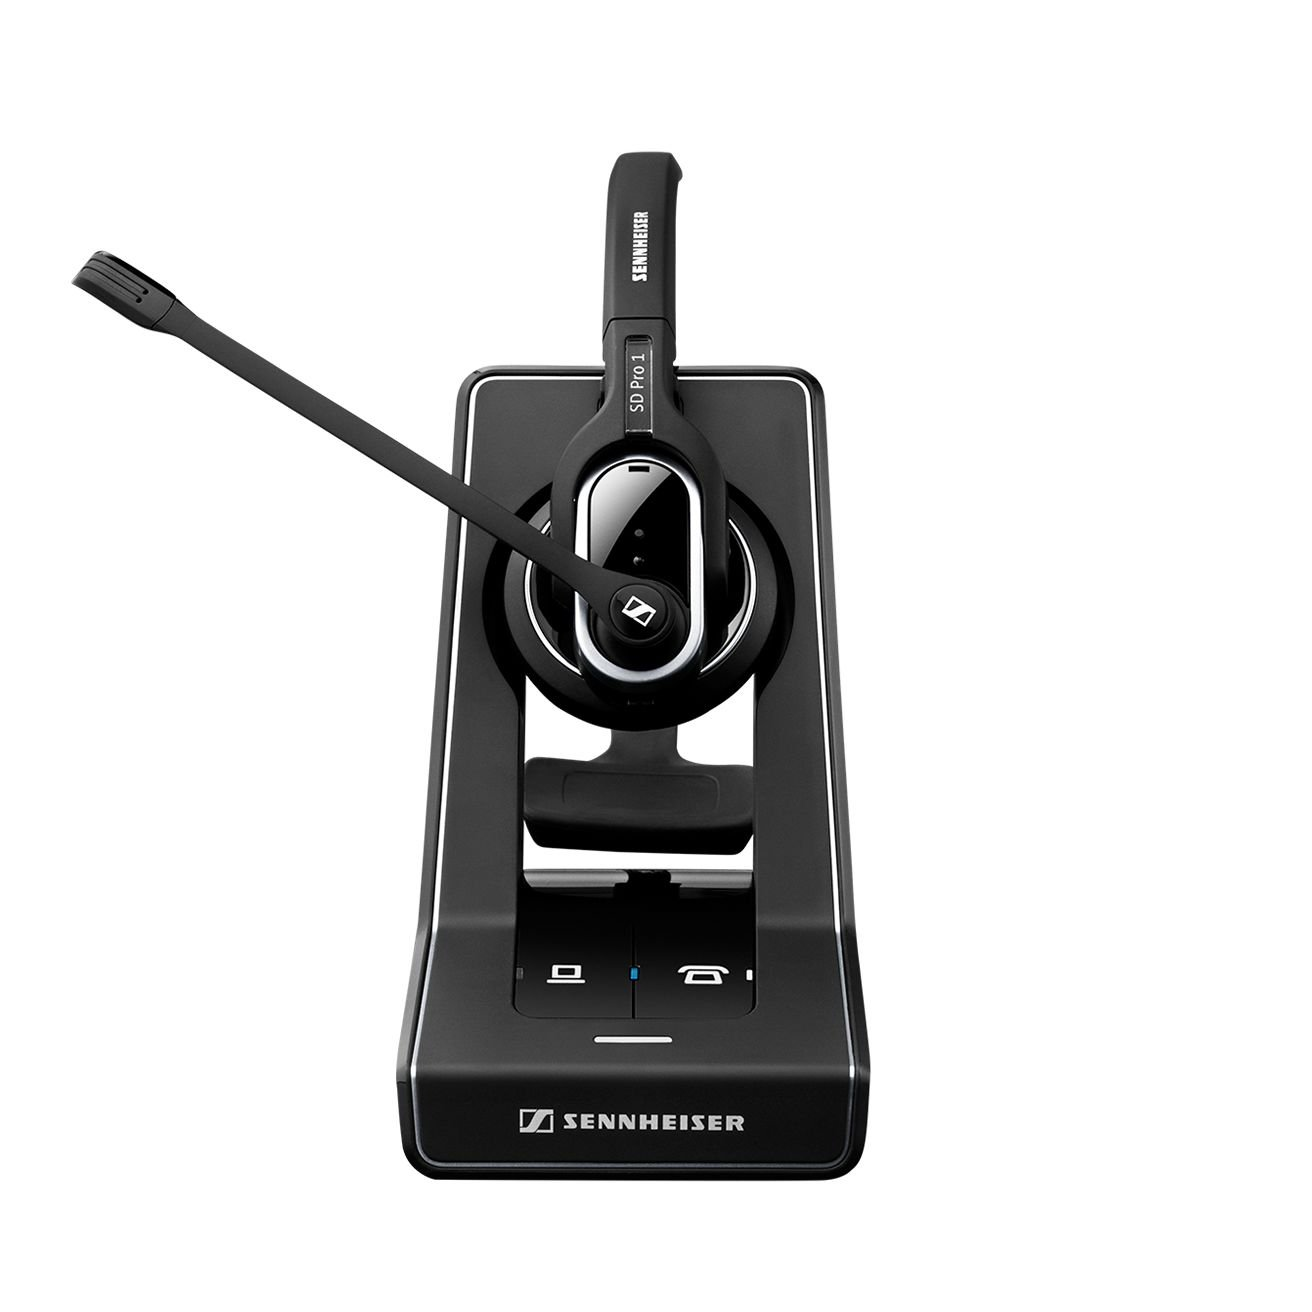 Sennheiser SD PRO2 - Stereo (Duo) Deskphone Cordless Headset with Cisco EHS Adapter | Compatible Cisco Models: 8900 and 9900 Series | Bonus Cushions Included by Sennheiser (Image #2)